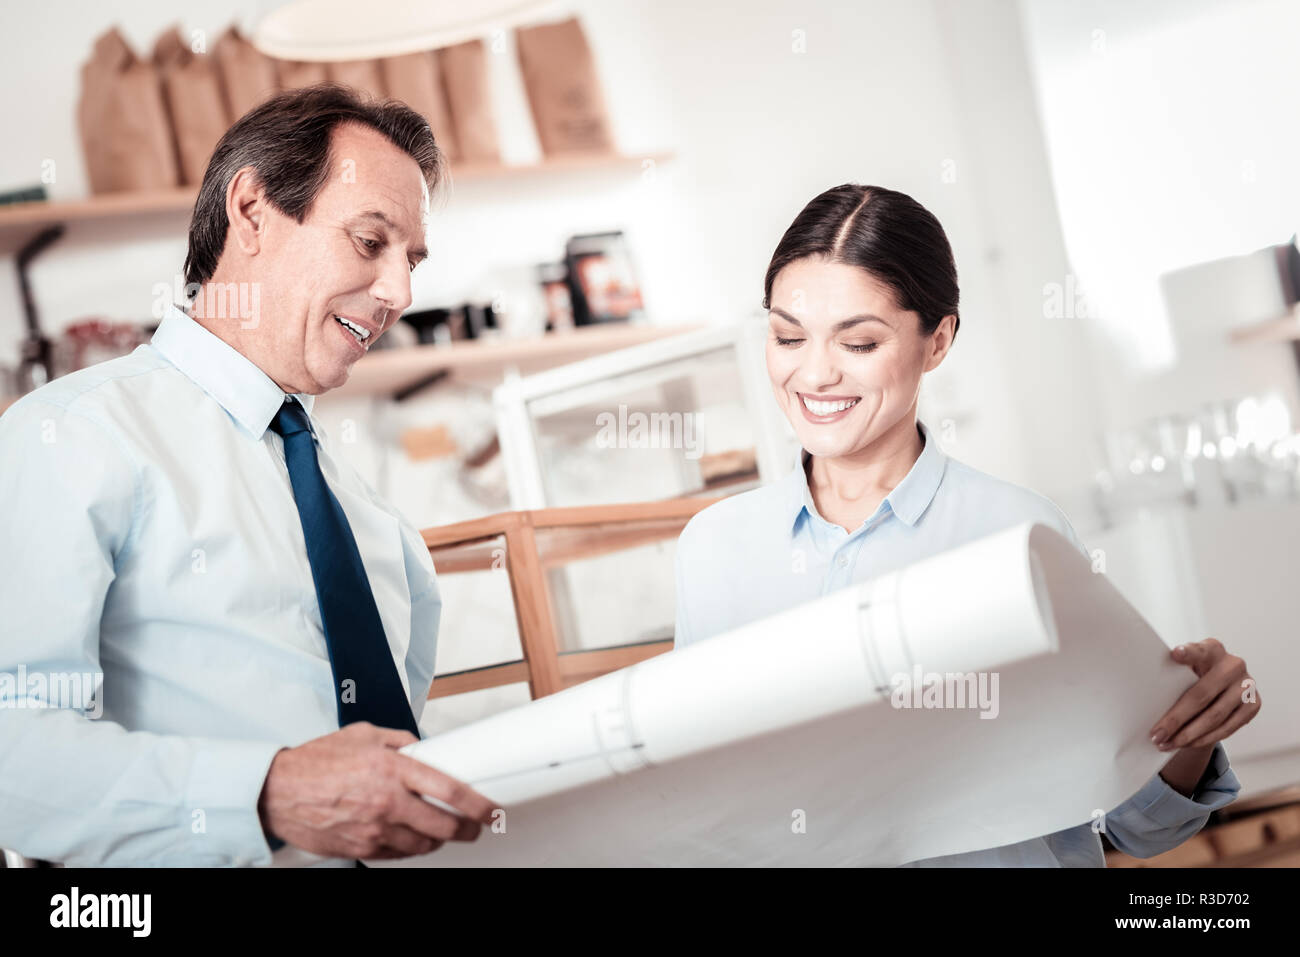 Optimization plan. Nice positive people discussing their business while looking at the drawing - Stock Image